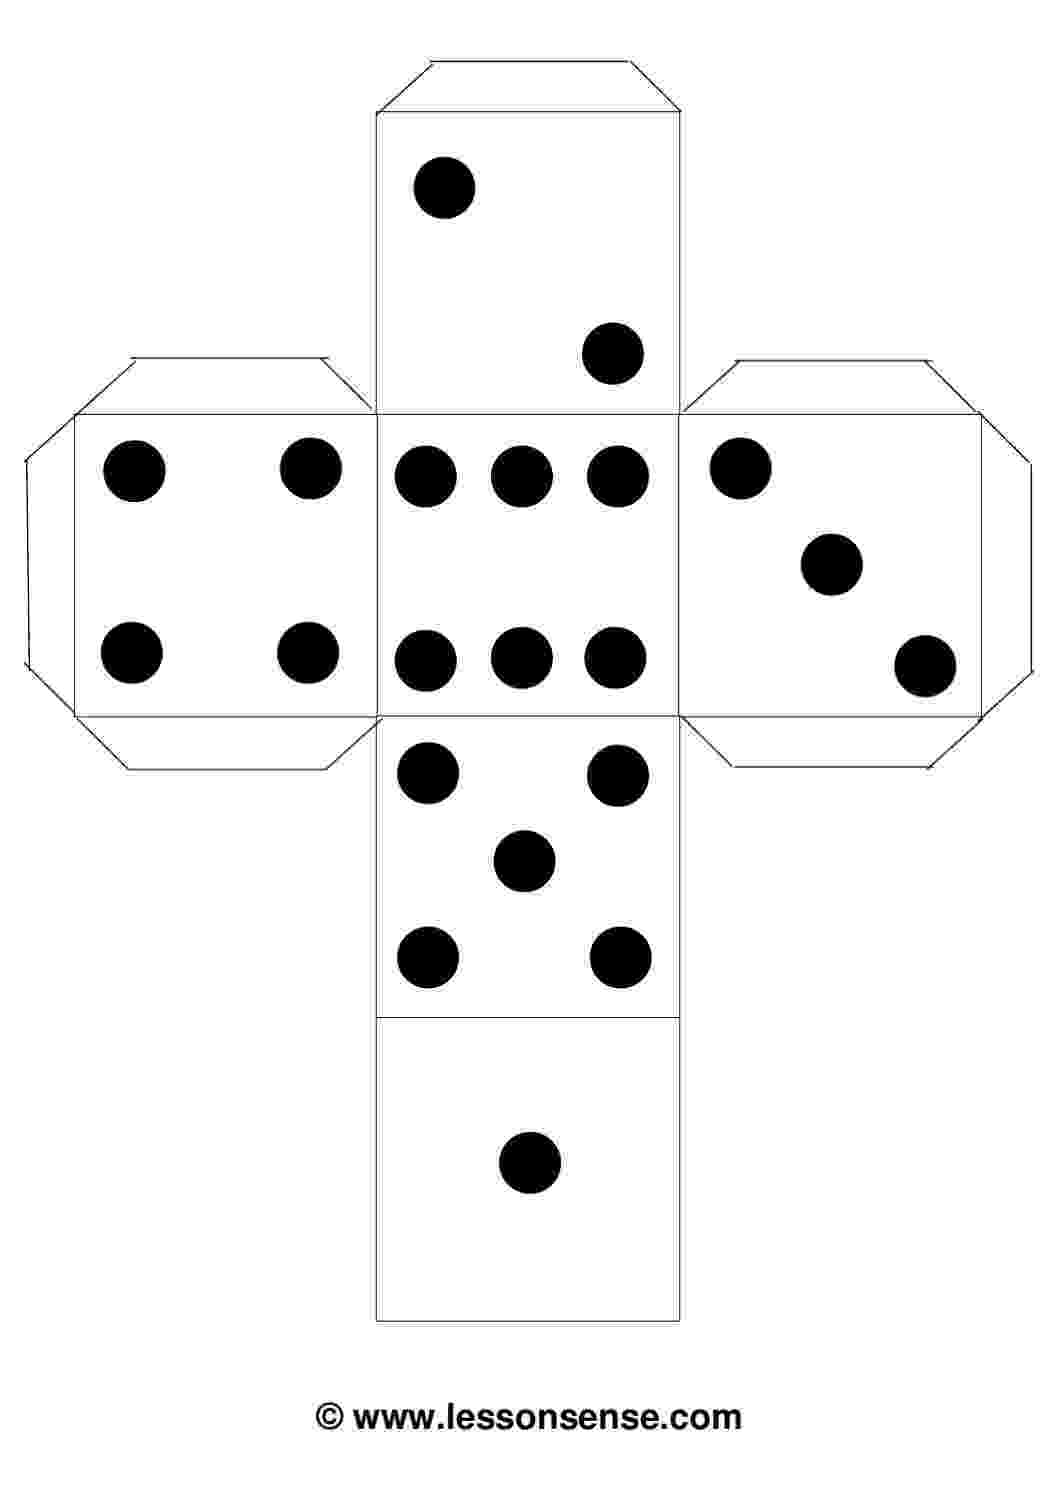 dice template with dots images for gt dice template with dots clipart best dots dice with template